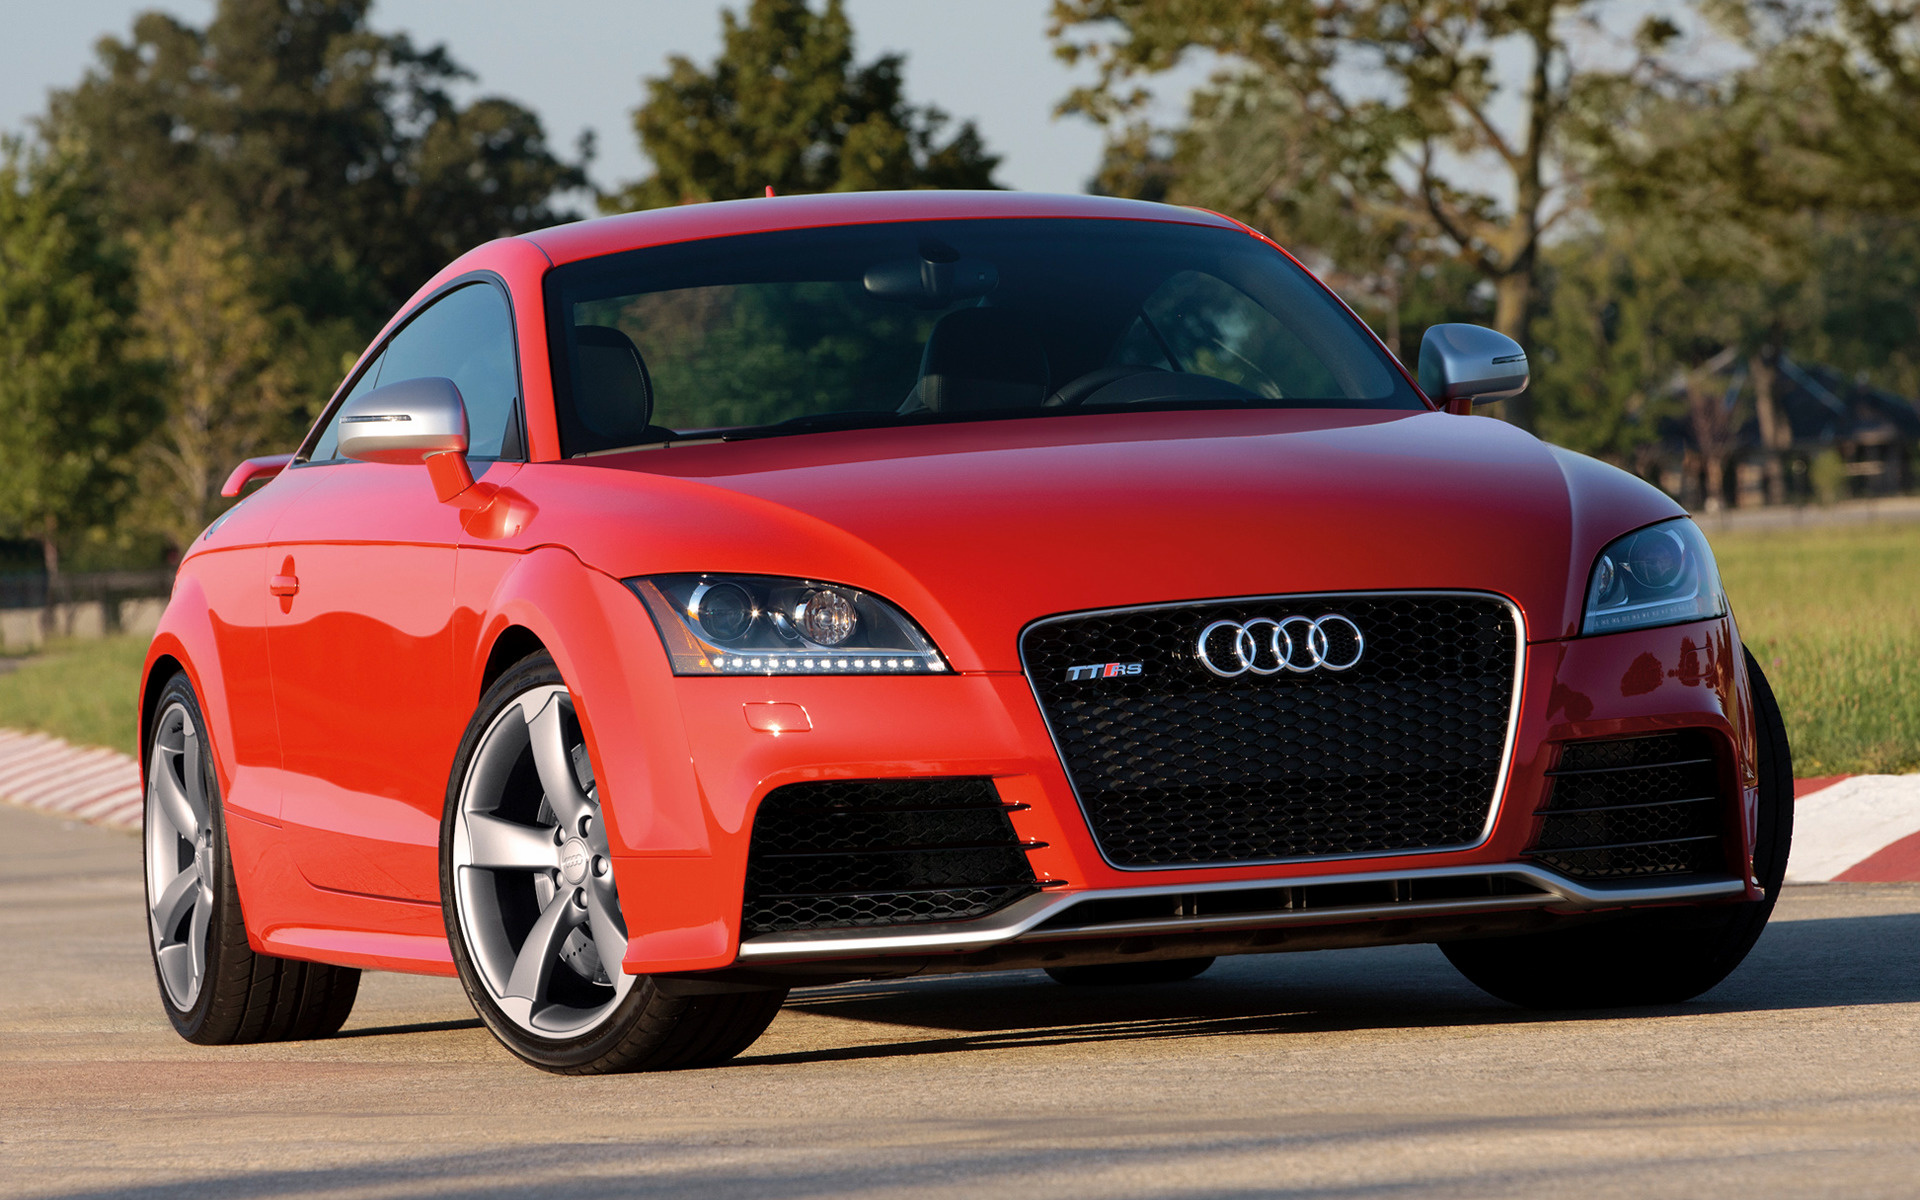 2011 Audi TT RS Coupe (US)